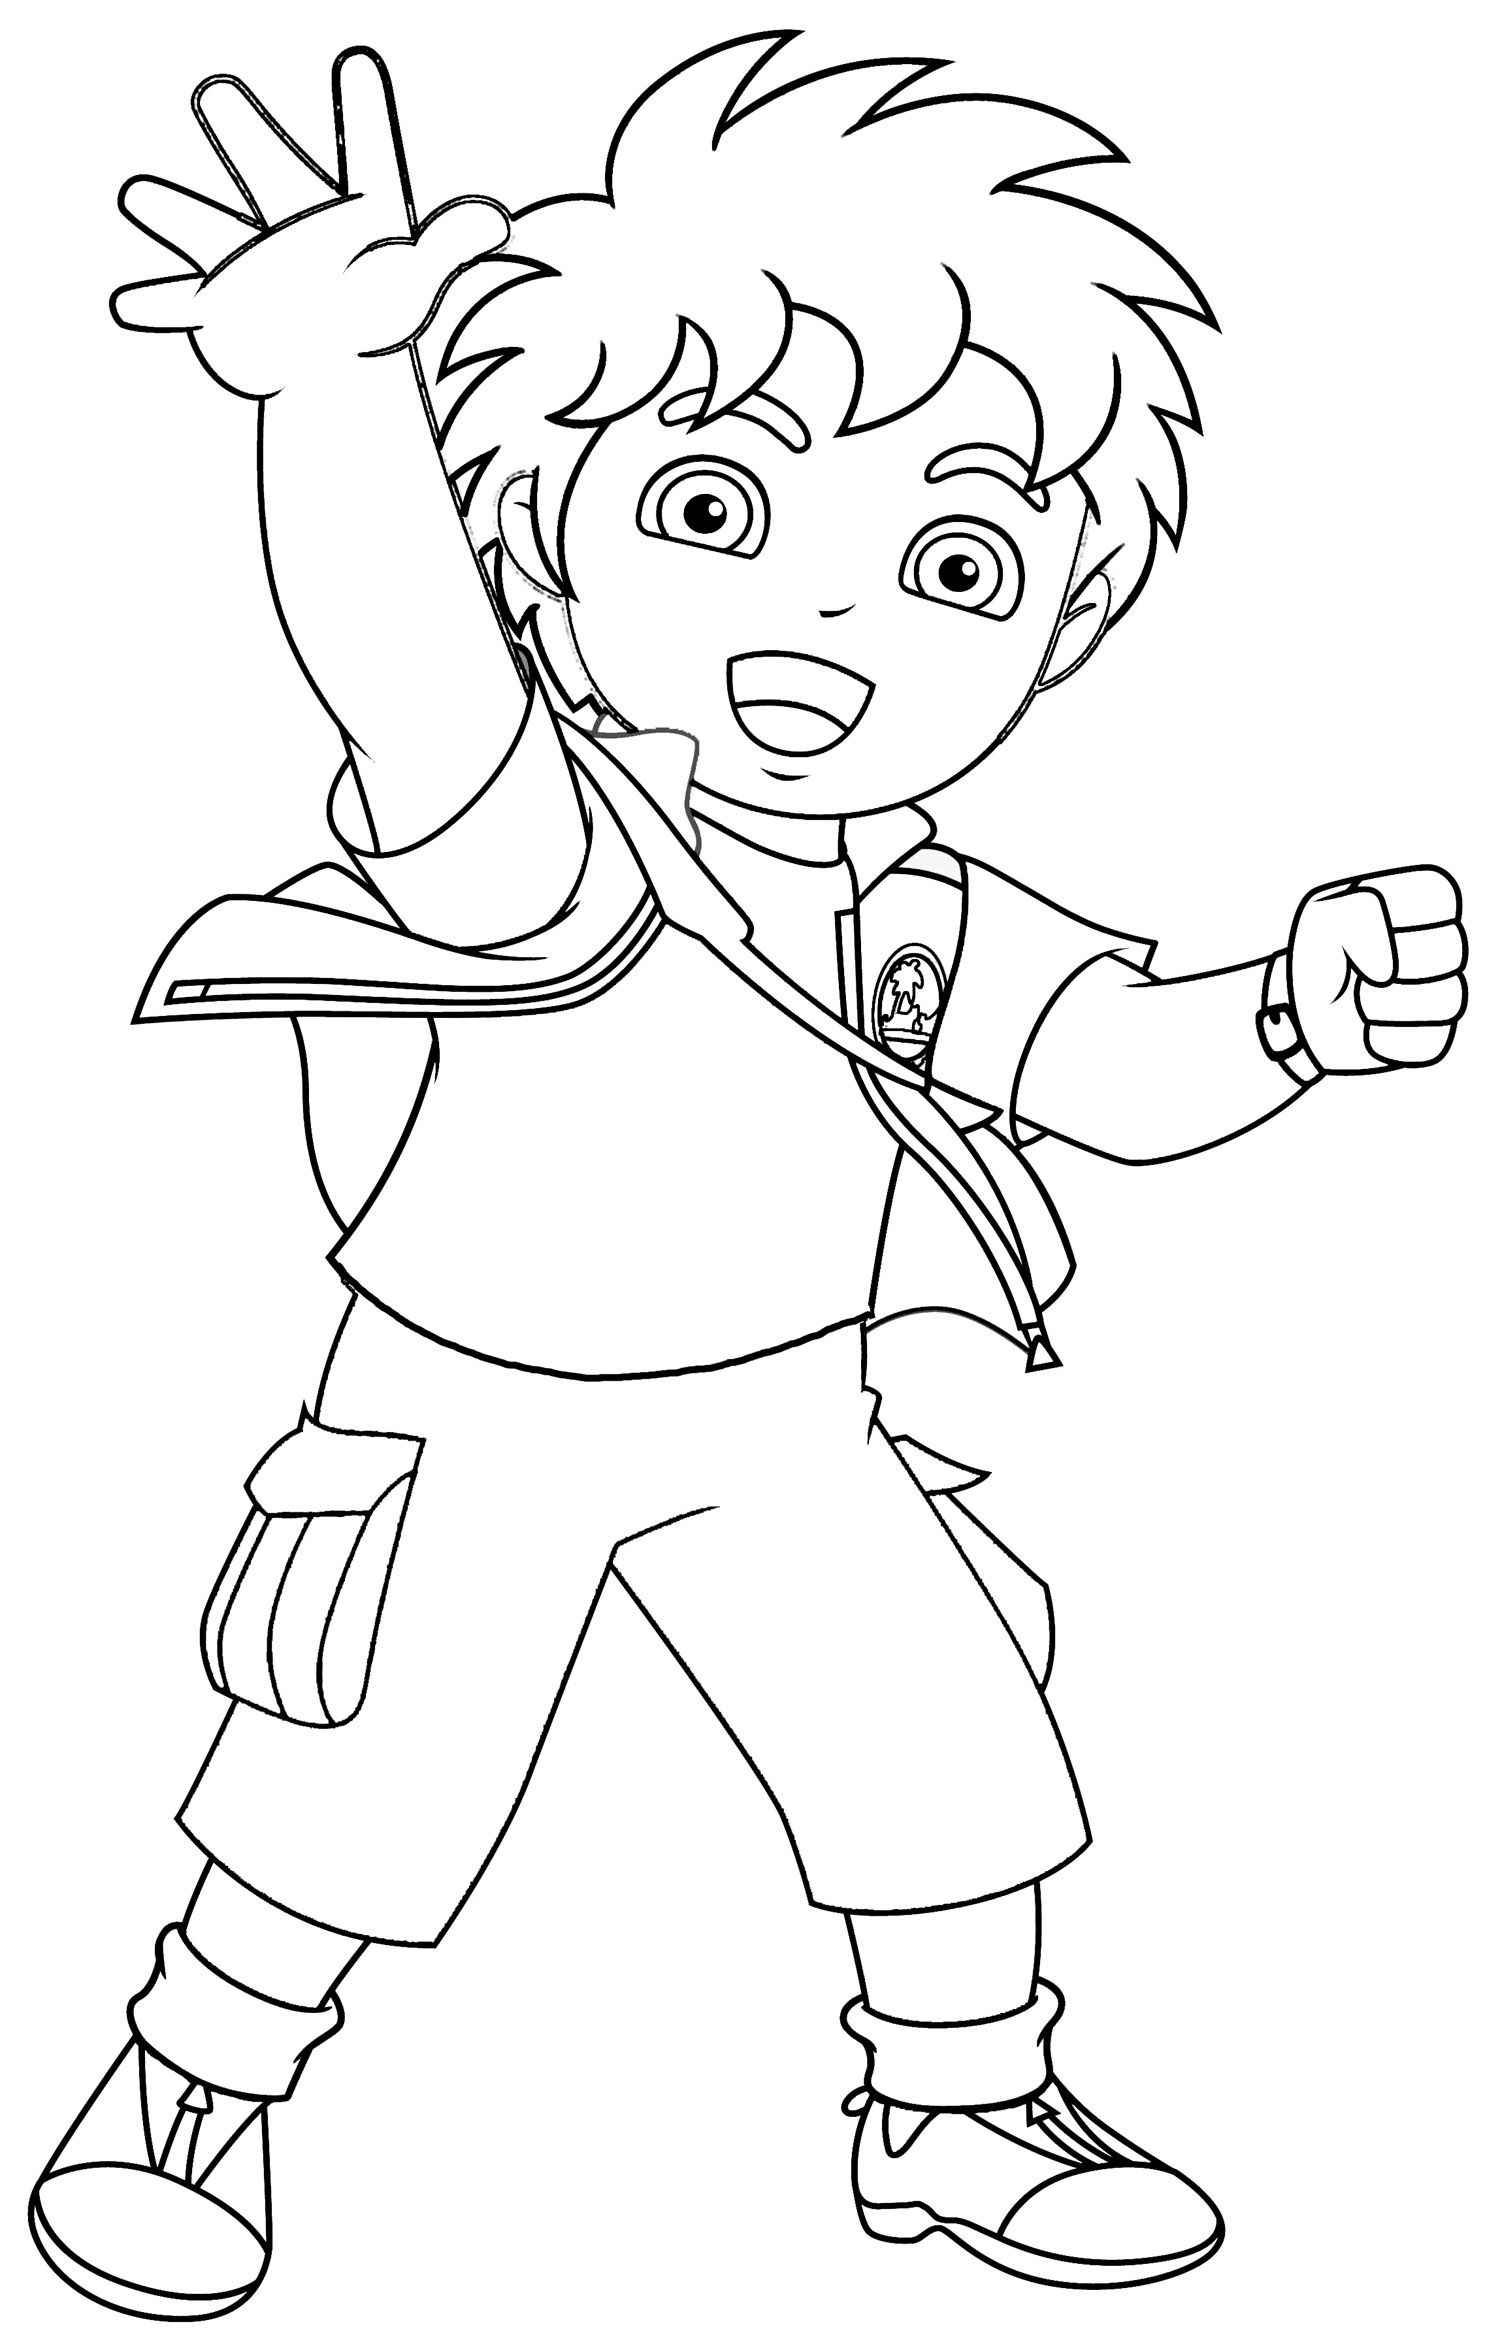 Nick jr spring coloring pages